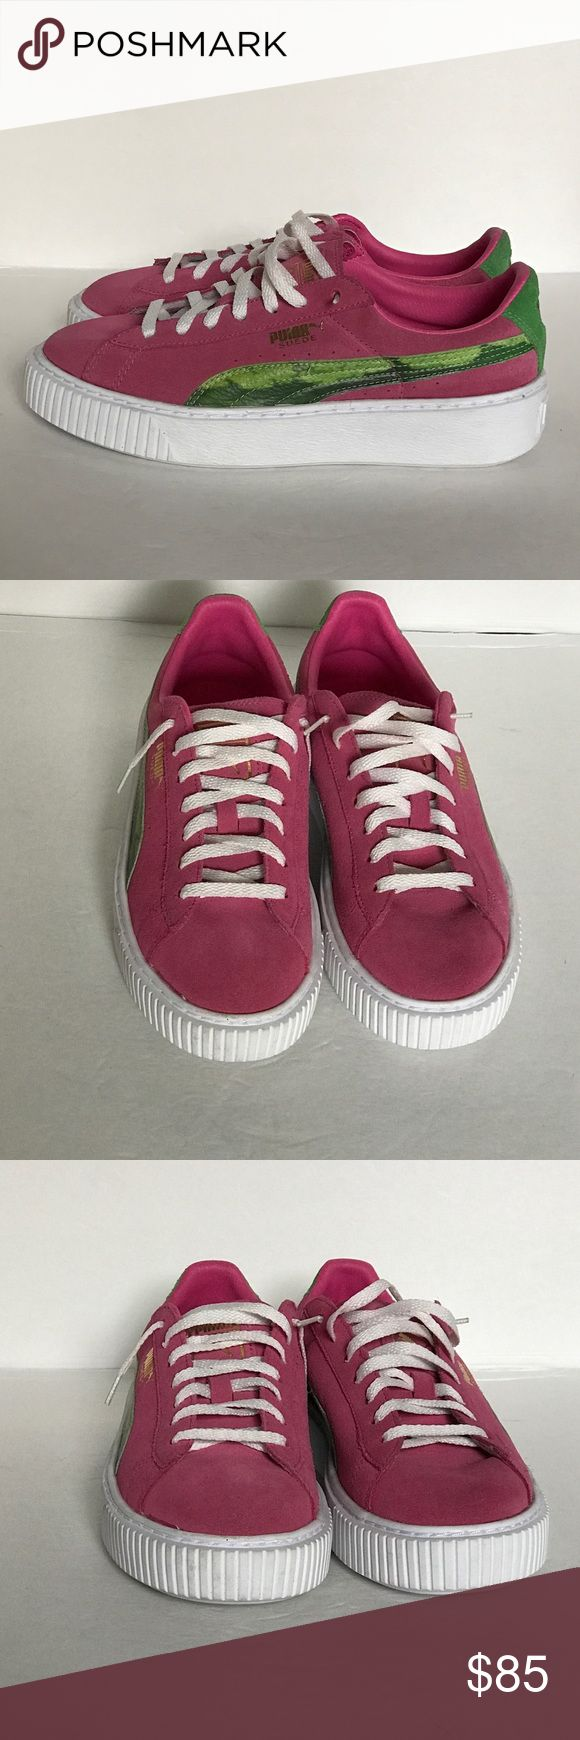 PUMA Platform Basket Creeper Watermelon SZ 6.5 C Brand New Without Box ...  PUMA Platform Basket Creeper Watermelon   Art #: 364732-01   Size: 6.5 C   Color: Watermelon   *** I'm a wardrobe stylist & the amazing pumas were purchased for a film but they were never worn on set. They are in Excellent Condition as show in detailed pictures *** Puma Shoes Sneakers